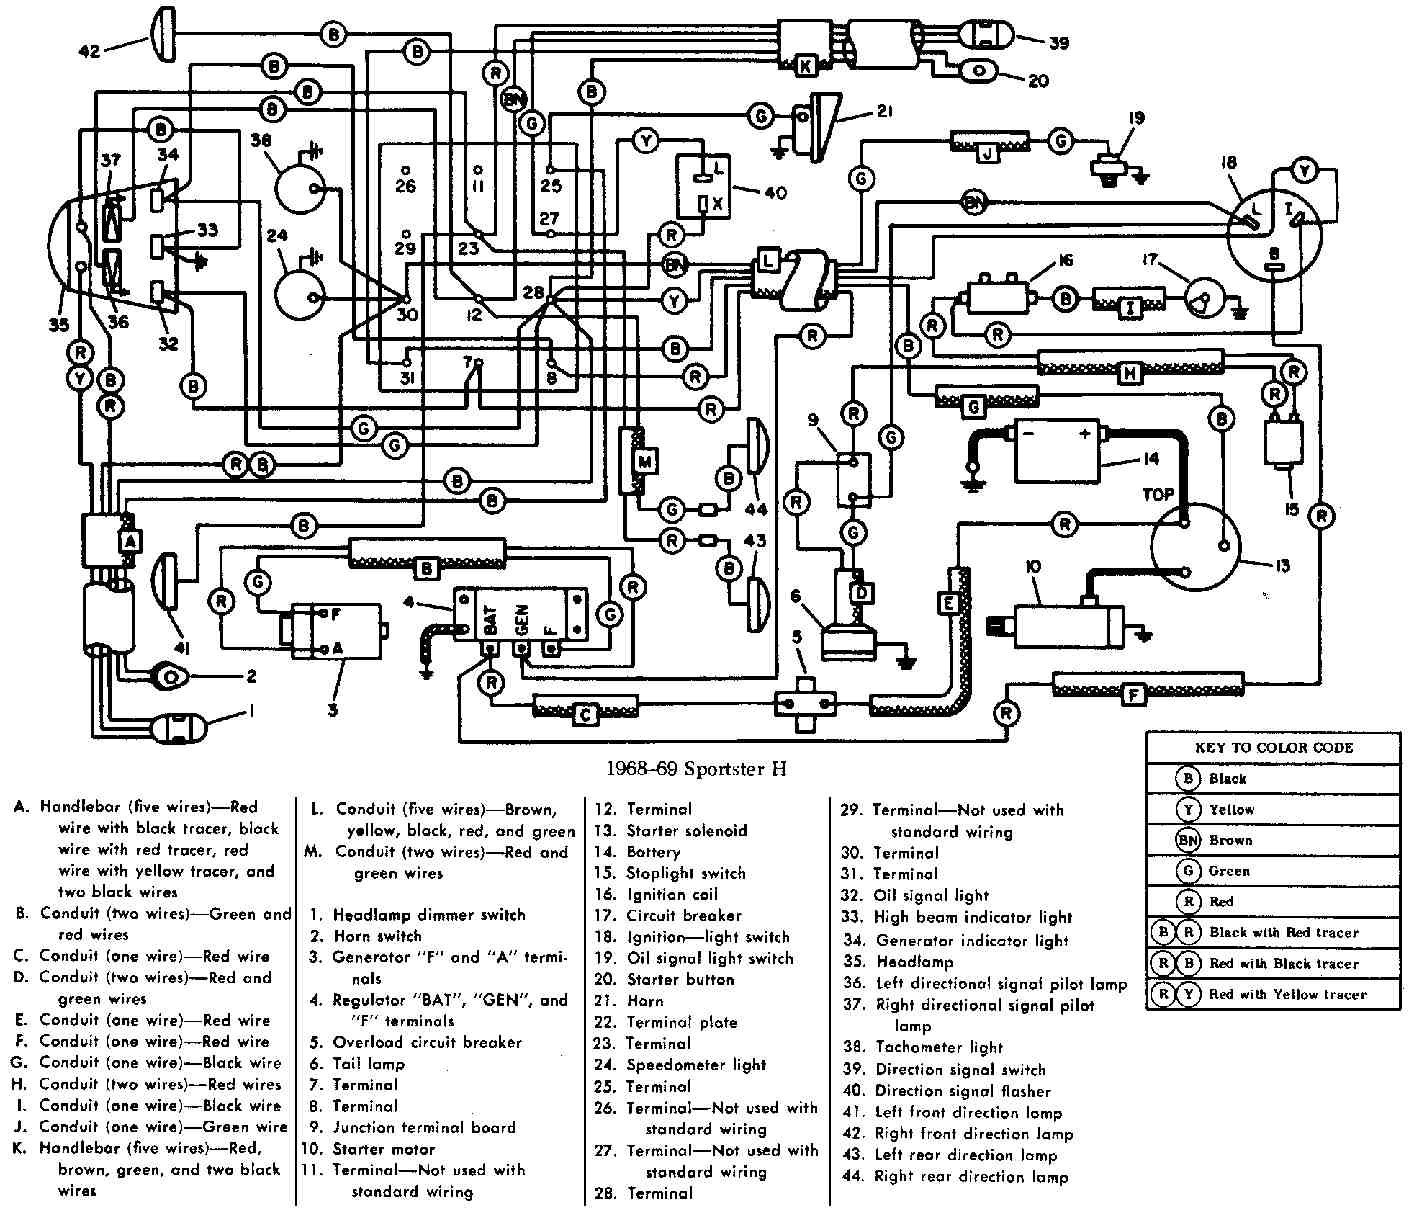 2012 Flstc Wiring Diagram Wire Center Harley Davidson Cruise Control Free Picture 2014 Auto Electrical U2022 Rh 6weeks Co Uk Heritage Softail